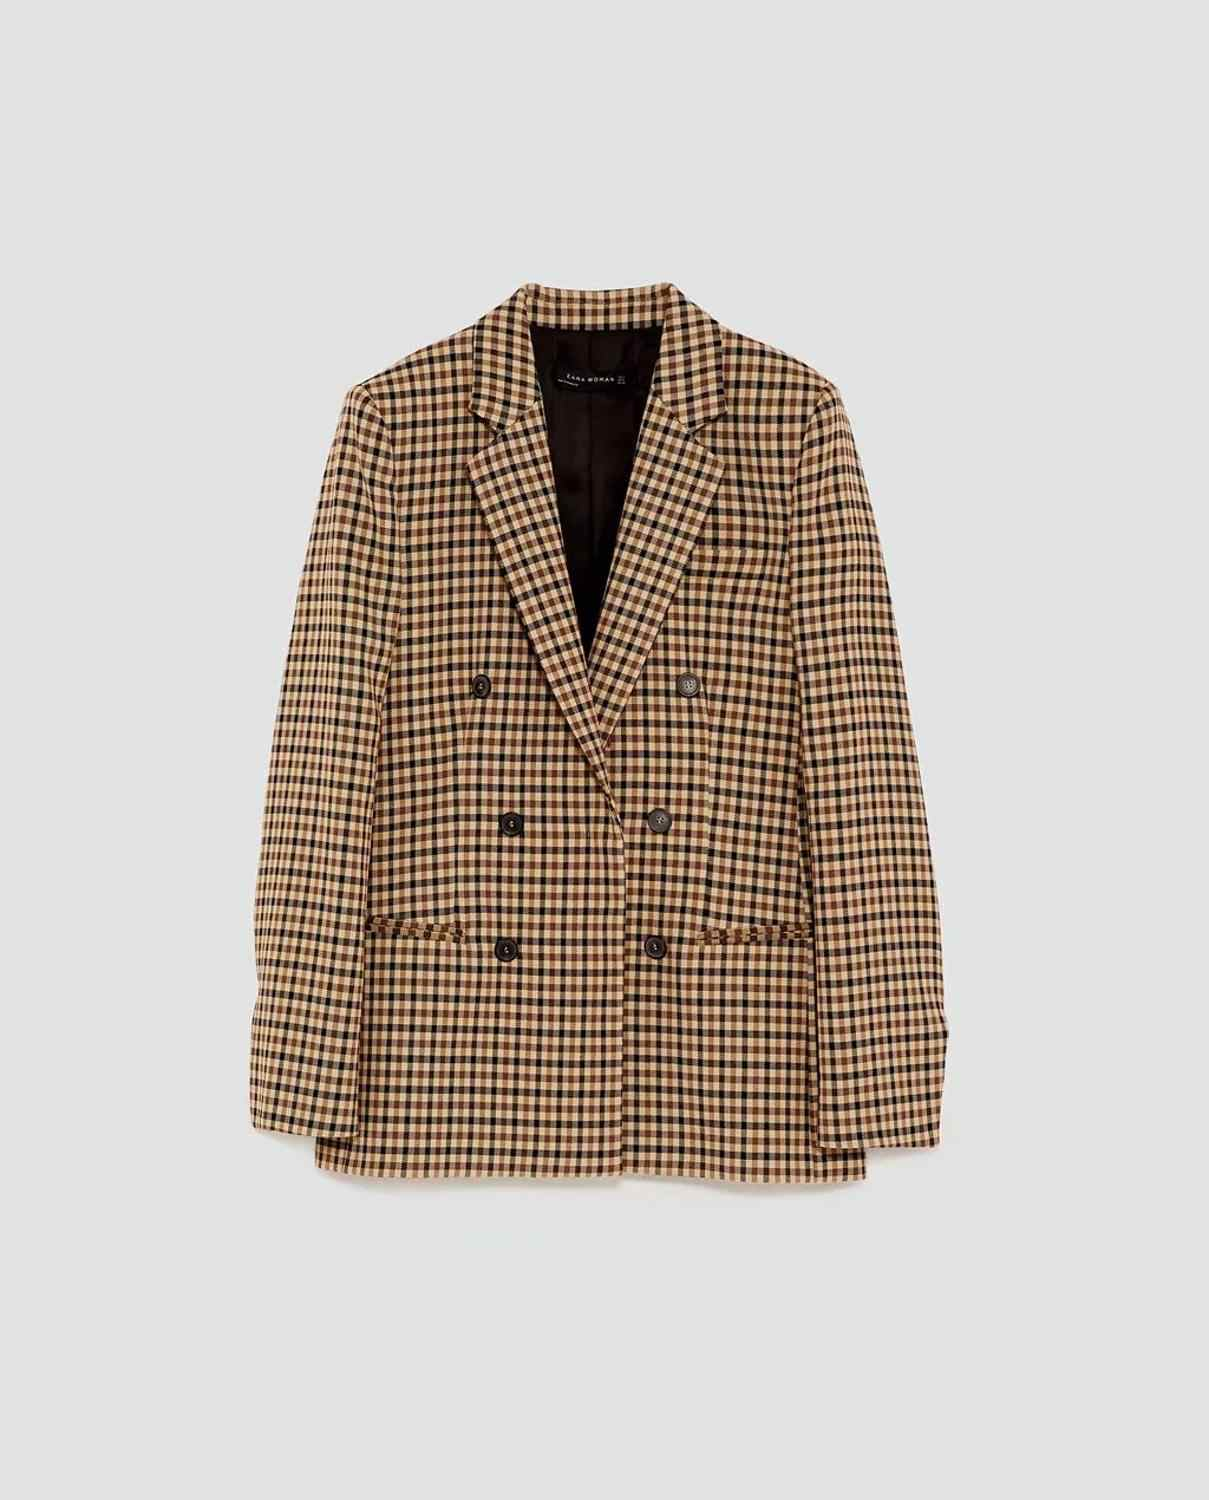 2019 Autumn Women's suit plaid jacket casual vintage chic coat female ZA style blazer Double-breasted outerwear women